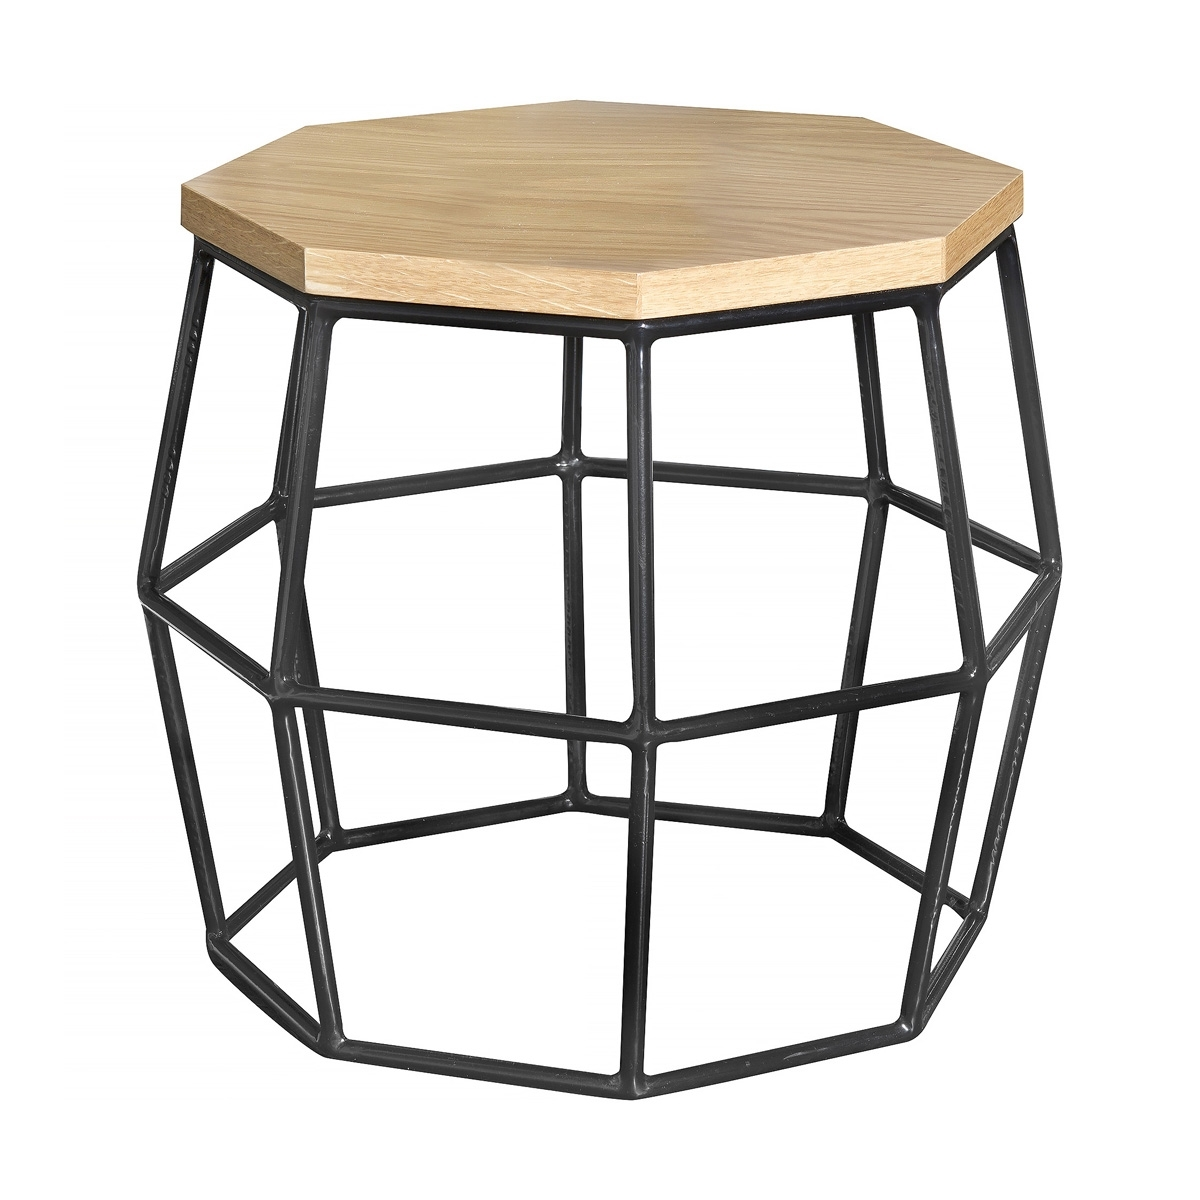 Sevenstonesinc In Recent Black Wire Coffee Tables (View 18 of 20)